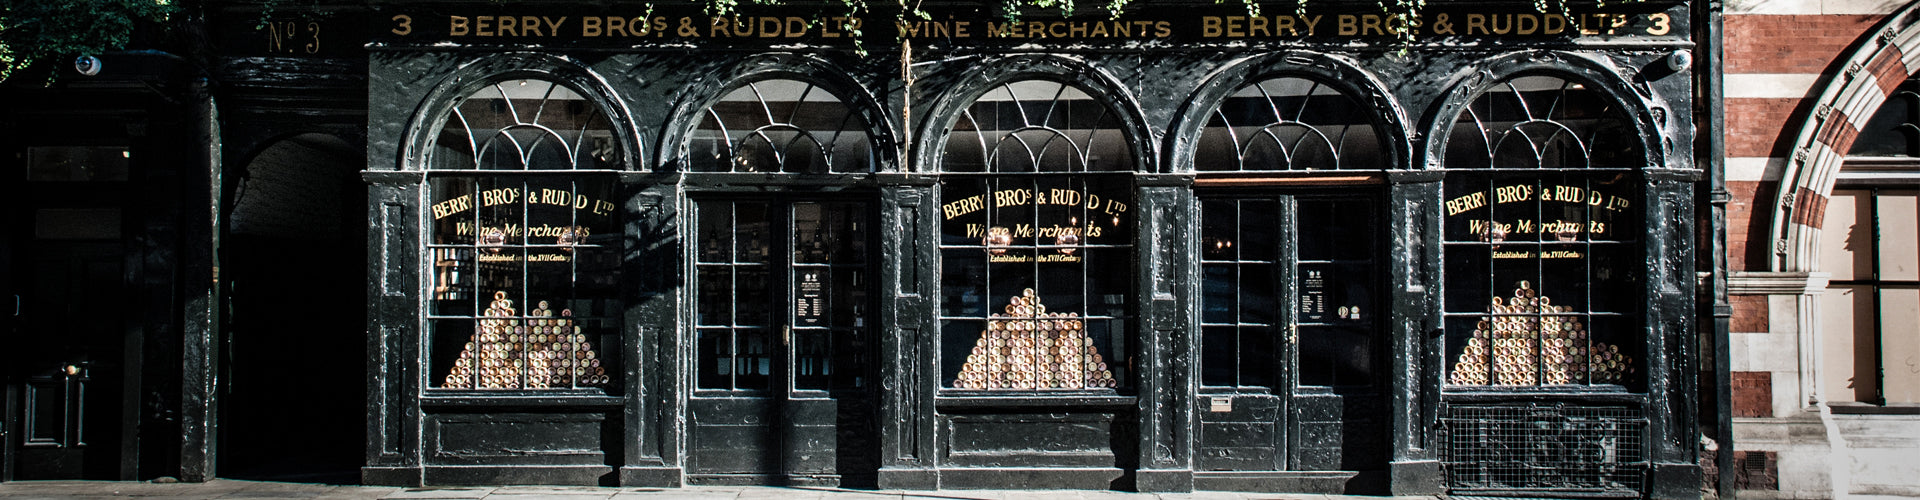 Berry Bros. & Rudd Shop at 3 St James's Street, London